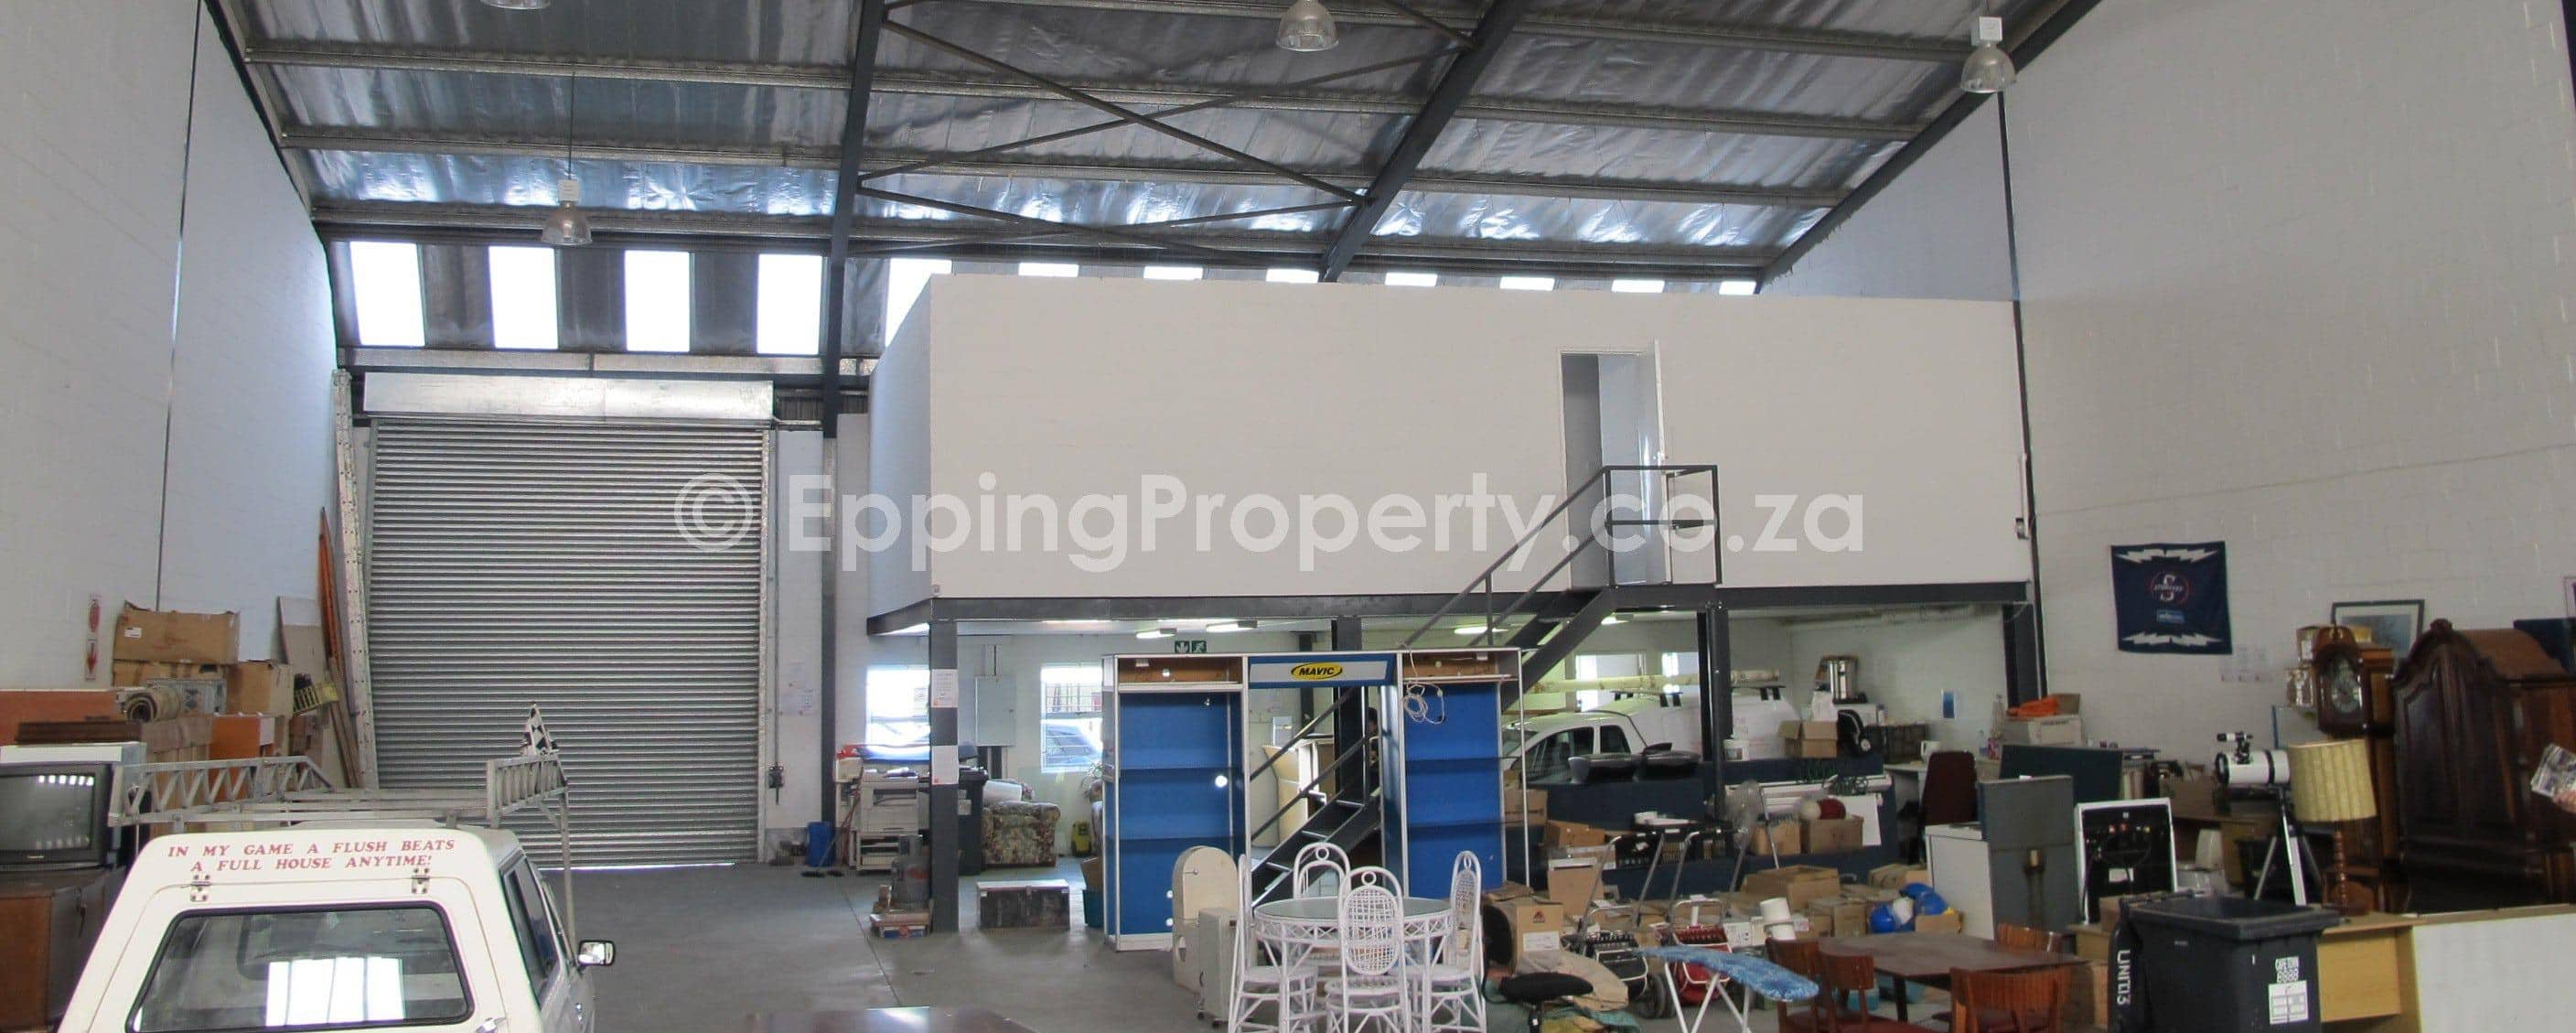 Warehouse for sale in Epping 2